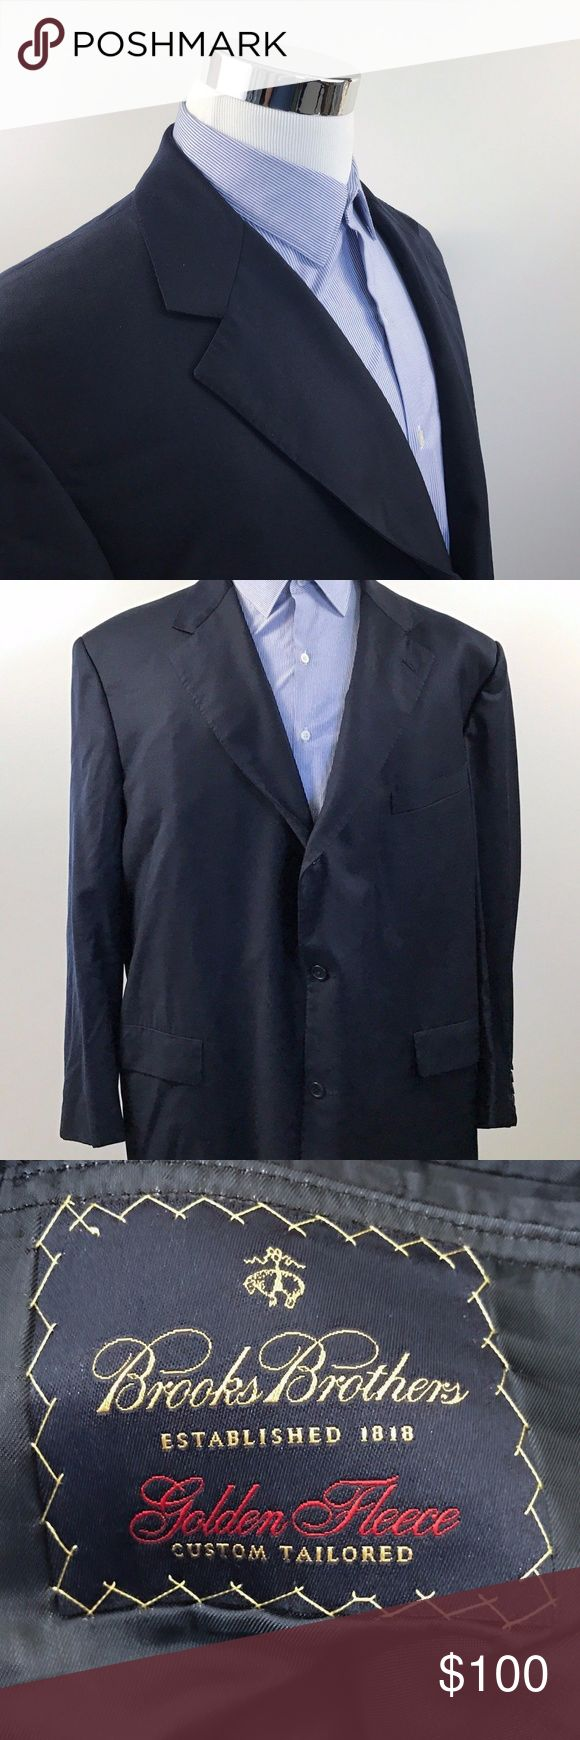 Brooks Brothers 48L Golden Fleece Navy Sport Coat Brooks Brothers Mens 48L Golden Fleece Custom Wool Navy Blue Sport Coat 2 Button  *Note: Please compare to a blazer you already own to assure an accurate fit.  Measurements (inches): Pit to Pit (across the chest): 26 Waist (across mid-section): 26.5 Shoulder (seam to seam): 21.5 Sleeve (shoulder to cuff): 25 Length (top of collar to hem): 34  Condition:  This item is in good pre-owned condition! Free from rips & stains.  All items come from a…